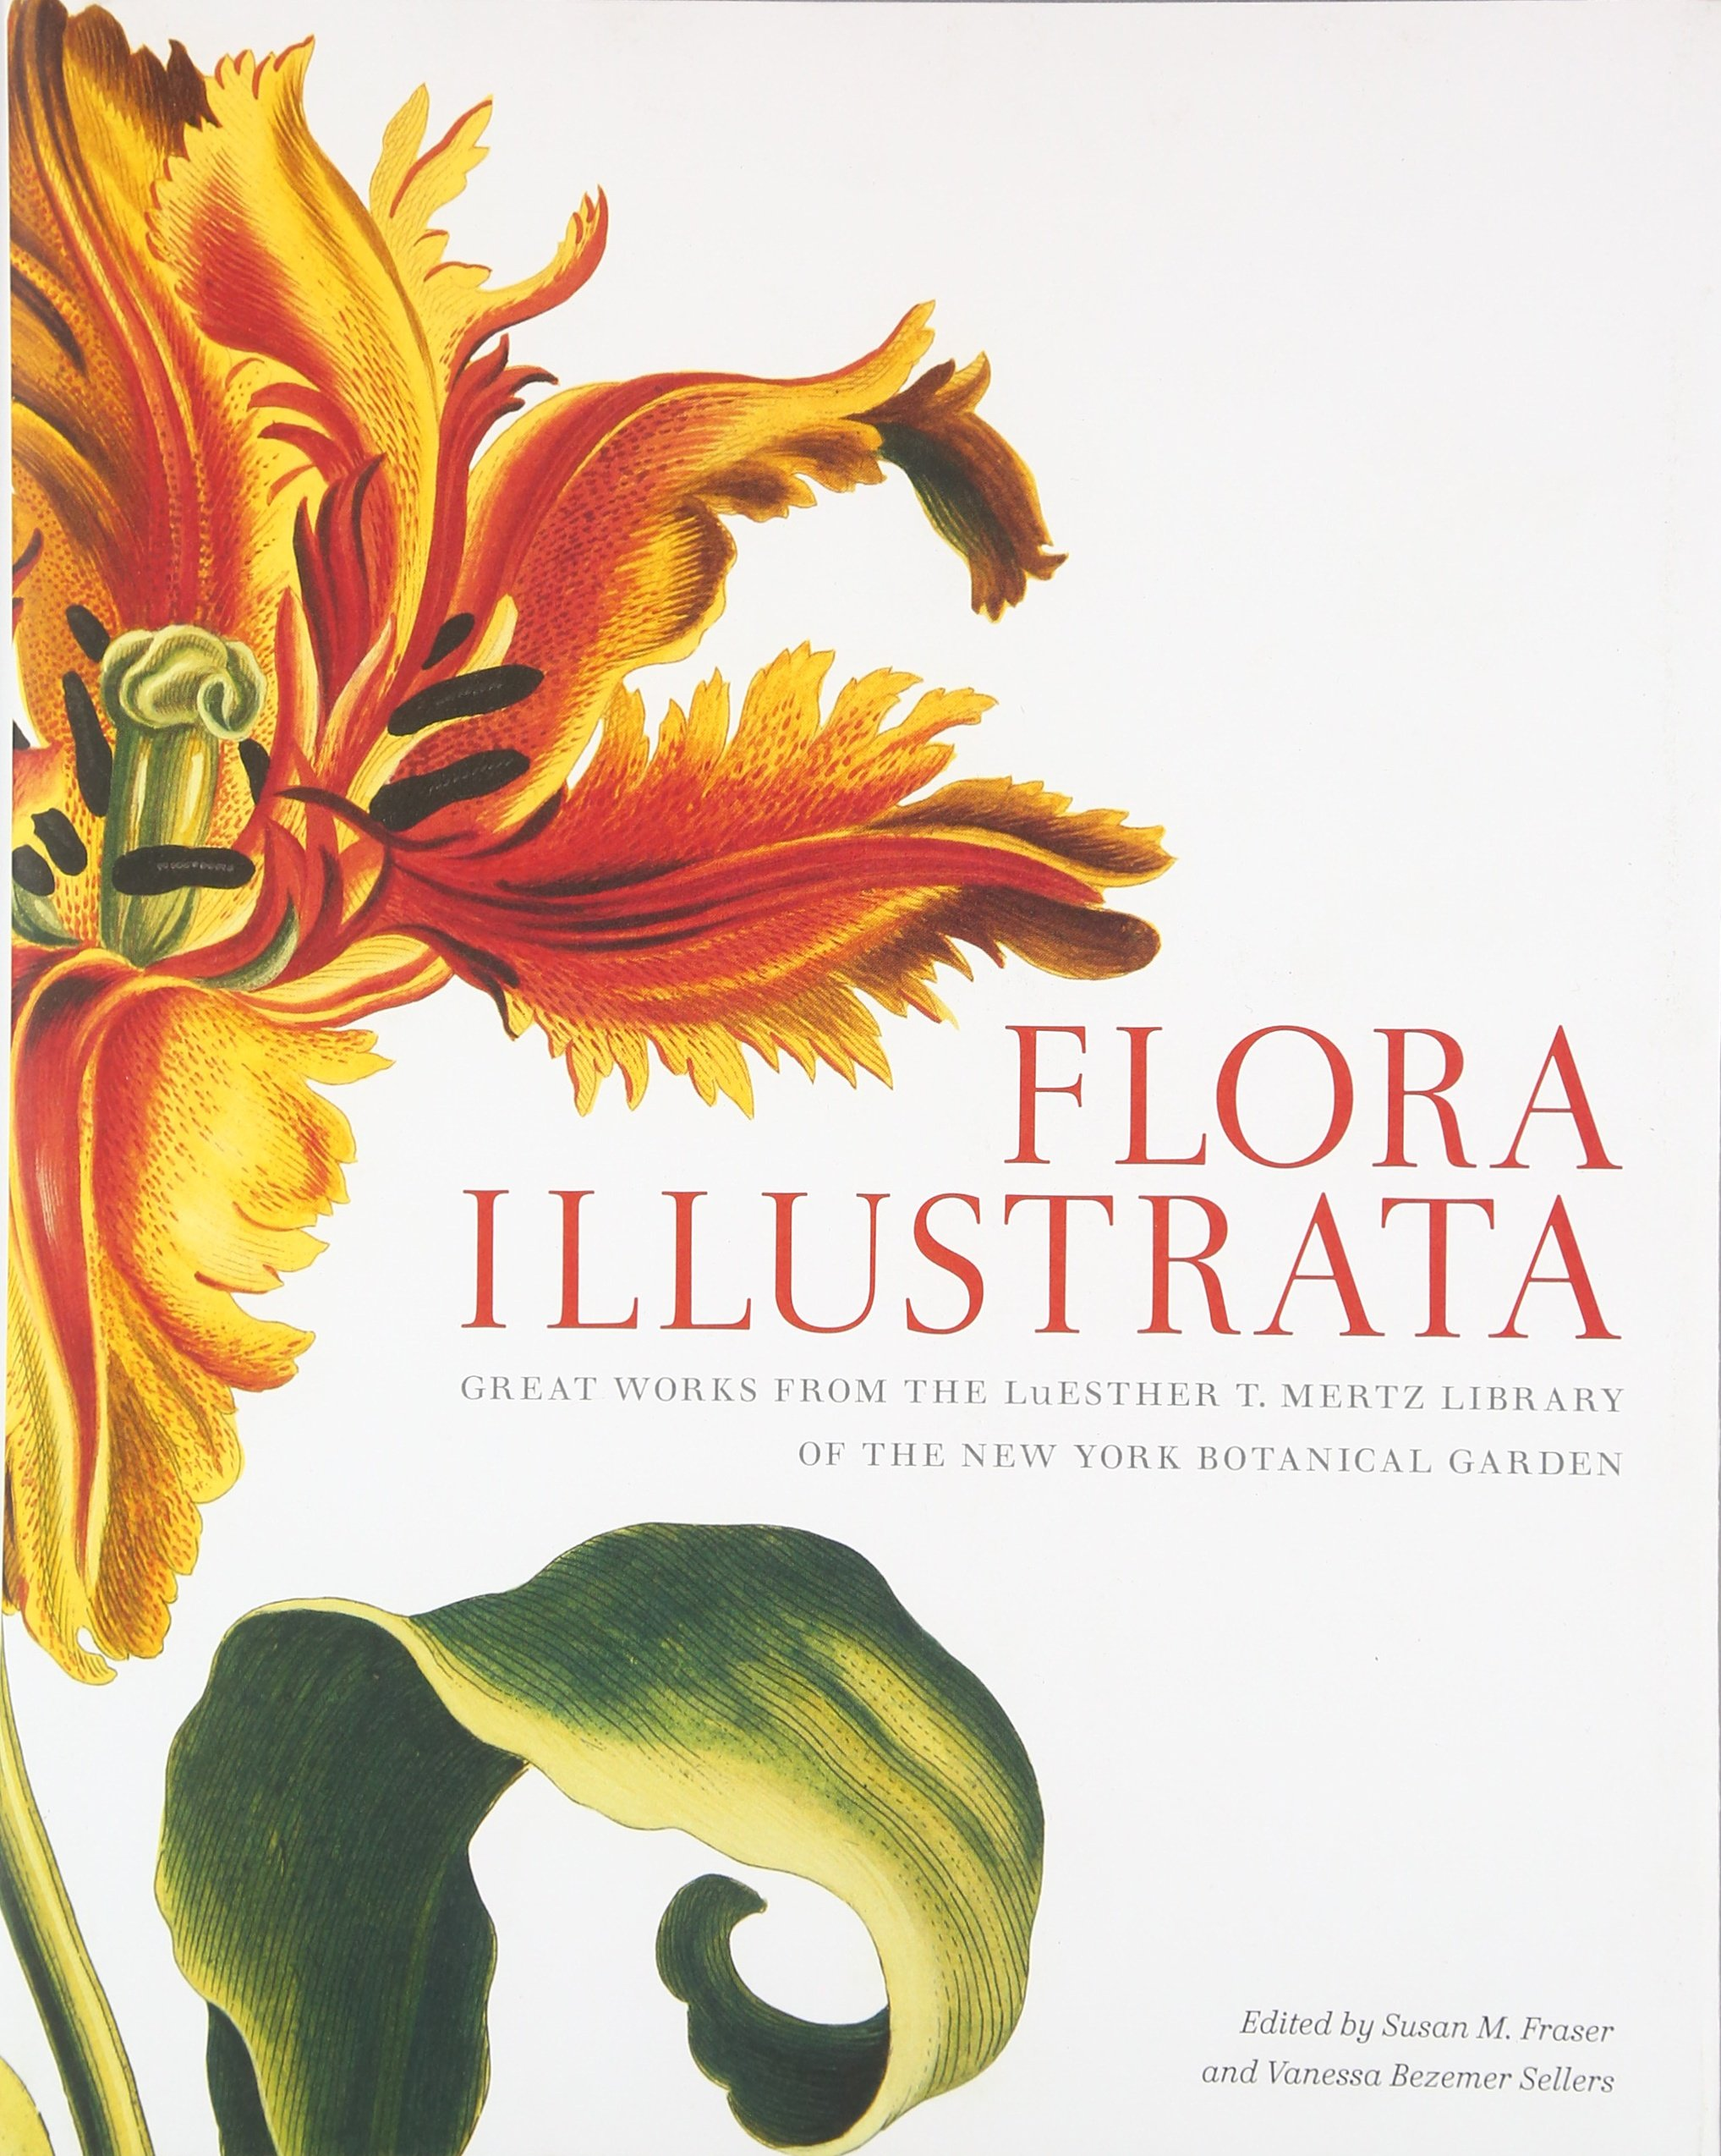 Flora Illustrata: Great Works from the LuEsther T. Mertz Library of The New York Botanical Garden by Ingramcontent